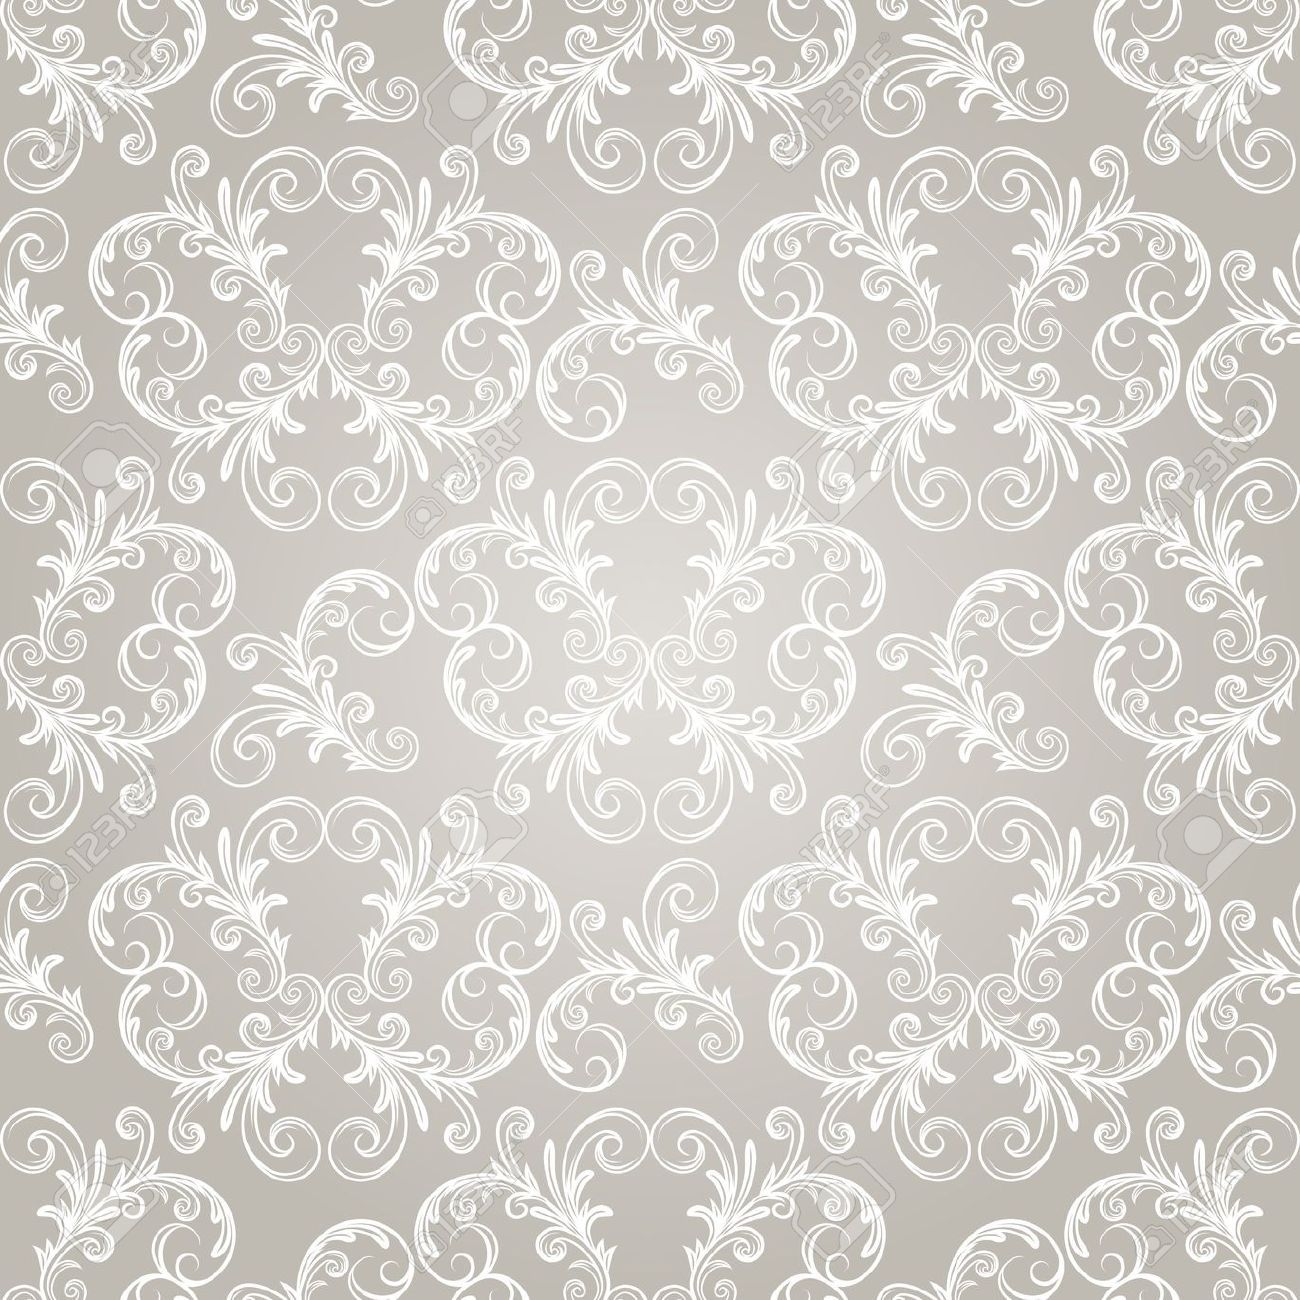 See A Rich Collection Of Stock Images Vectors Or Photos For Filigree You Can Buy On Shutterstock